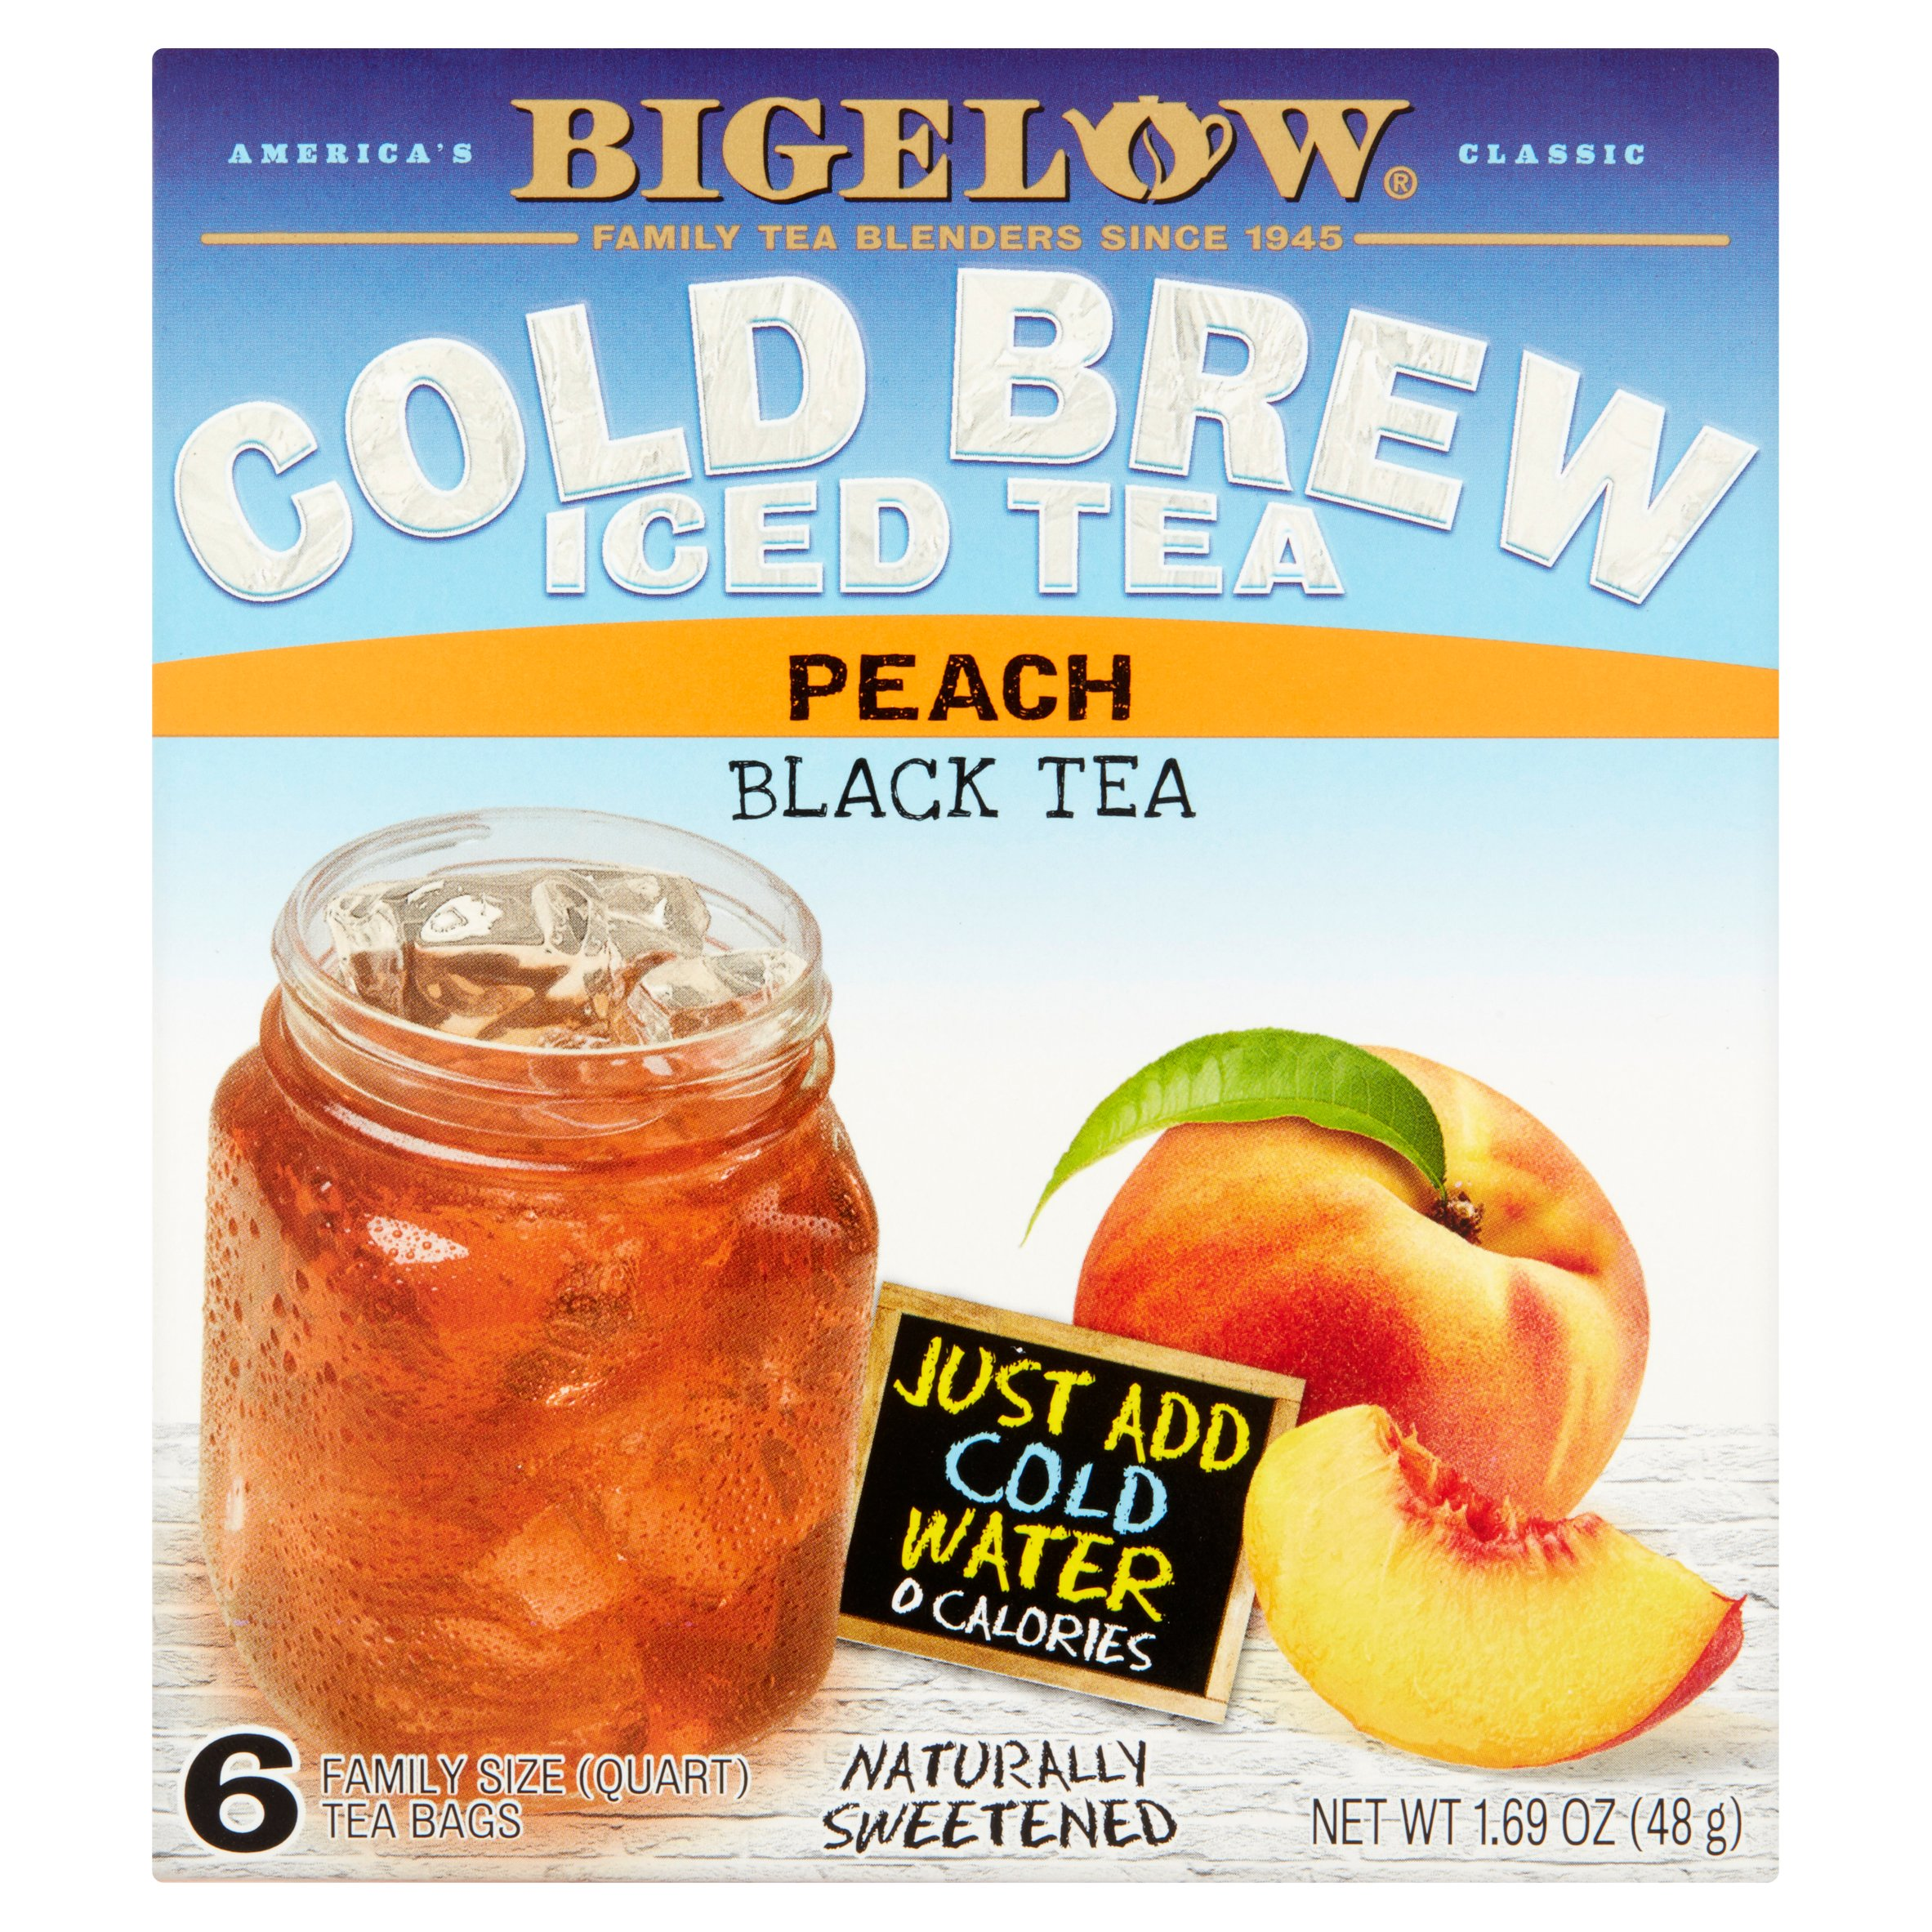 Bigelow Cold Brew Iced Black Tea, Peach, 1.69 Oz, 6 Count